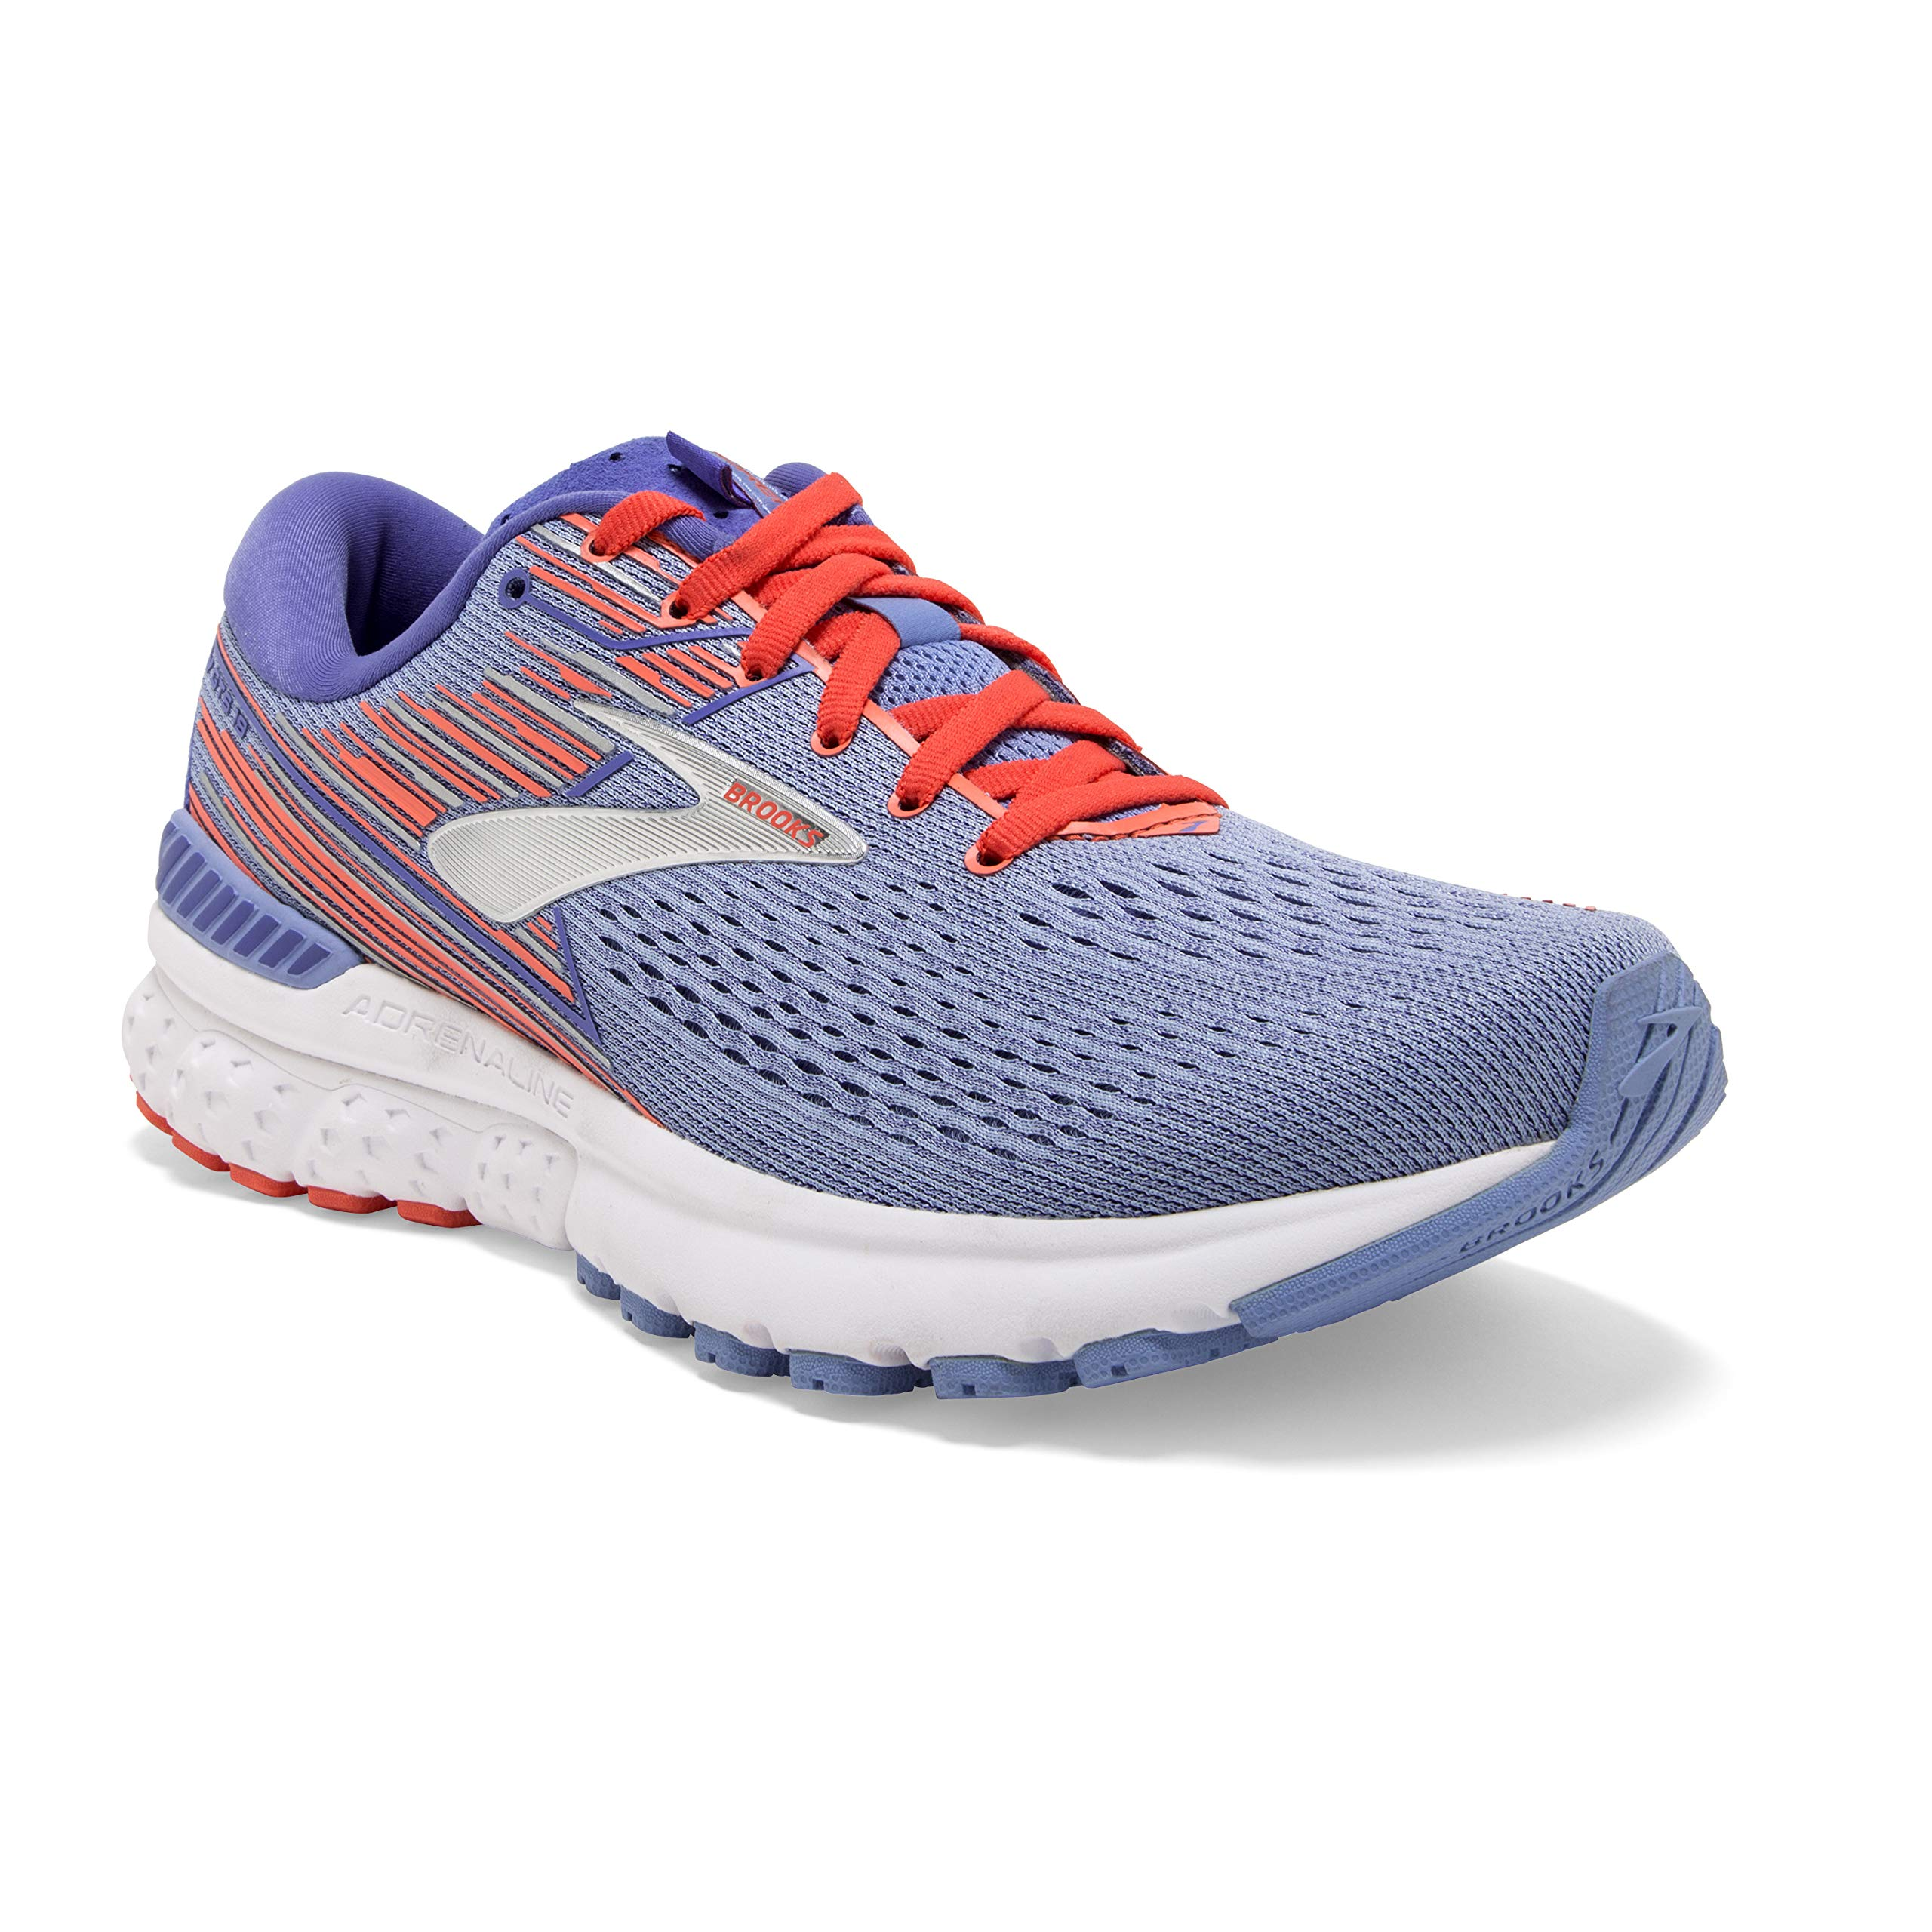 Brooks Womens Adrenaline GTS 19 Running Shoe - Bel Air Blue/Coral/Silver - B - 10.0 by Brooks